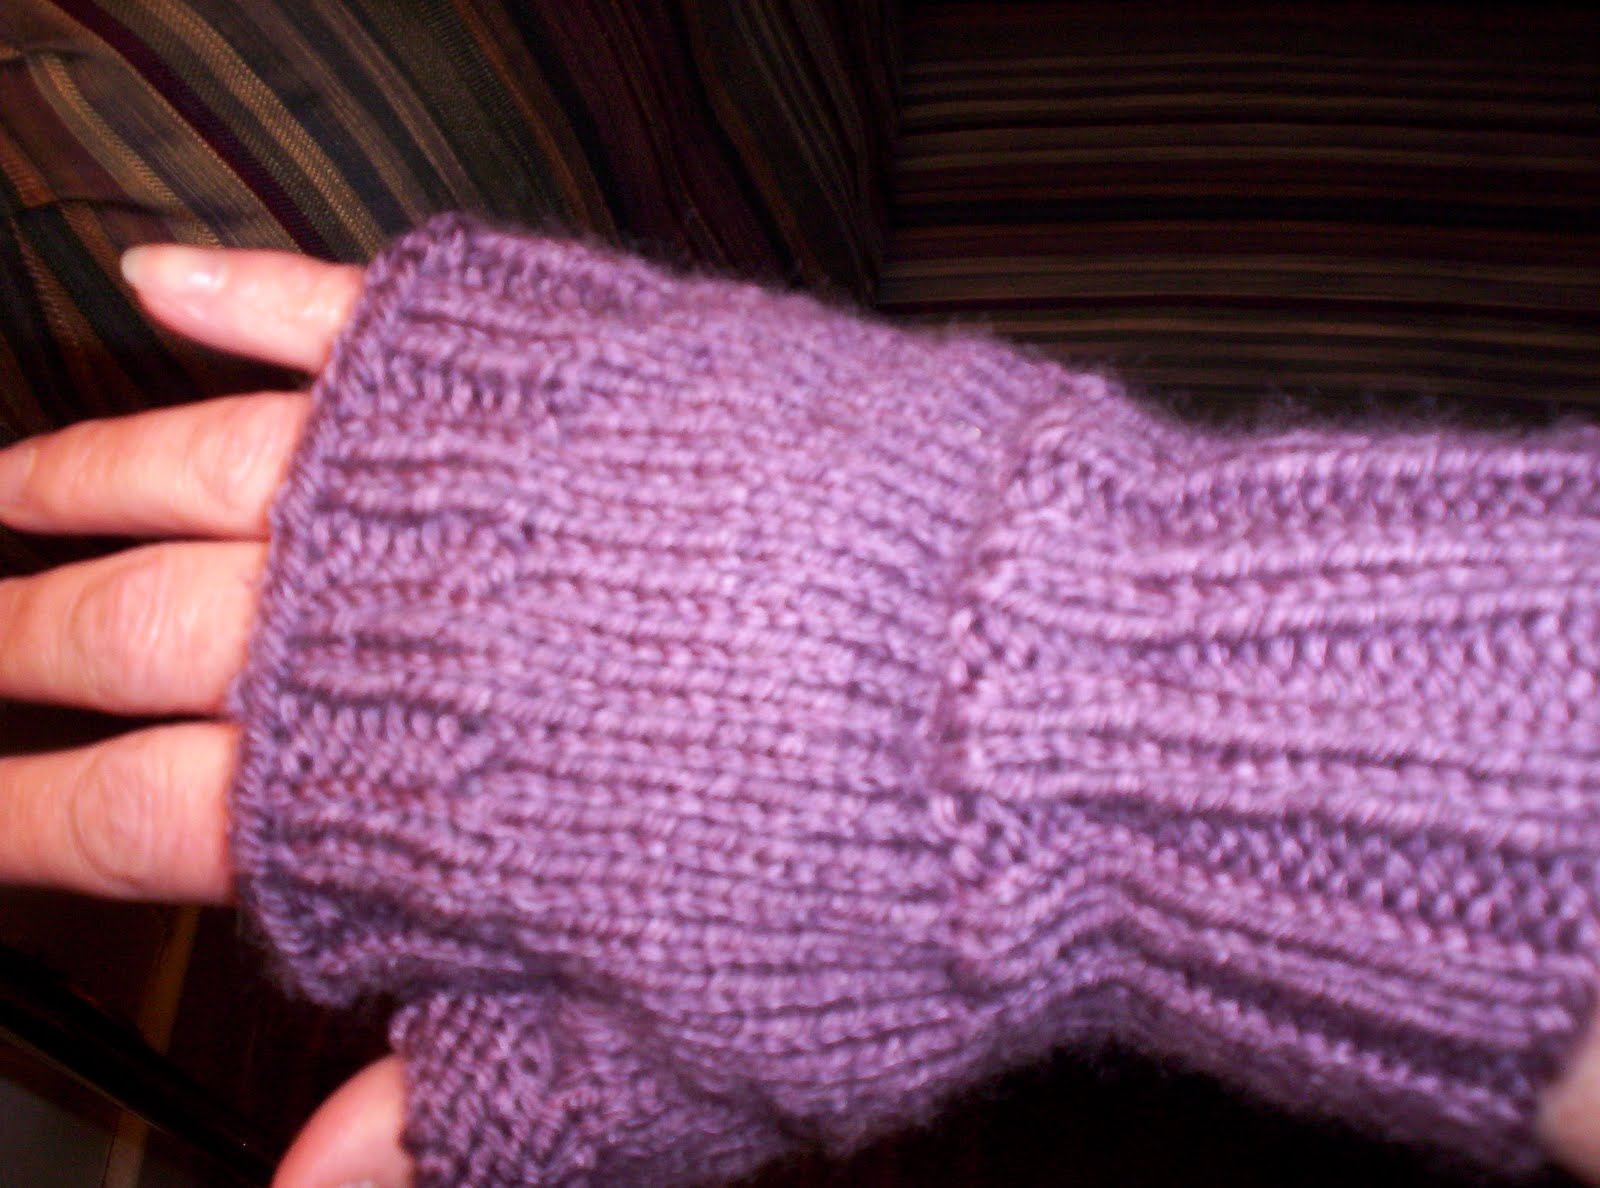 Knit Fingerless Gloves Pattern : Busyknitting: Any Idiot Can Knit These Fingerless Gloves ...